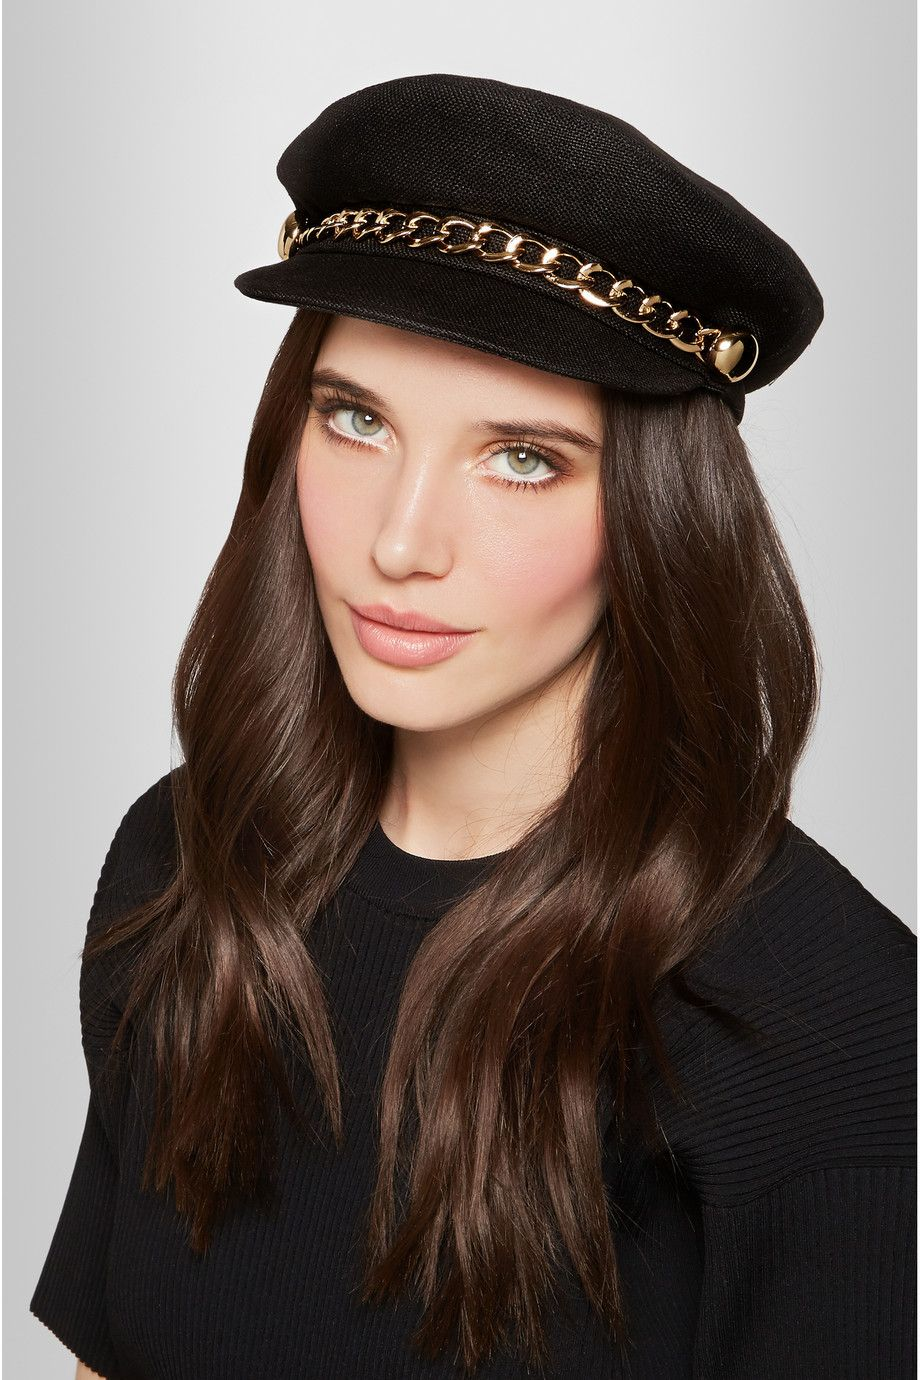 Clearance Finishline Discount Find Great Marina Hat in Black Eugenia Kim Free Shipping Release Dates Sale Shop rX1Lo4o0